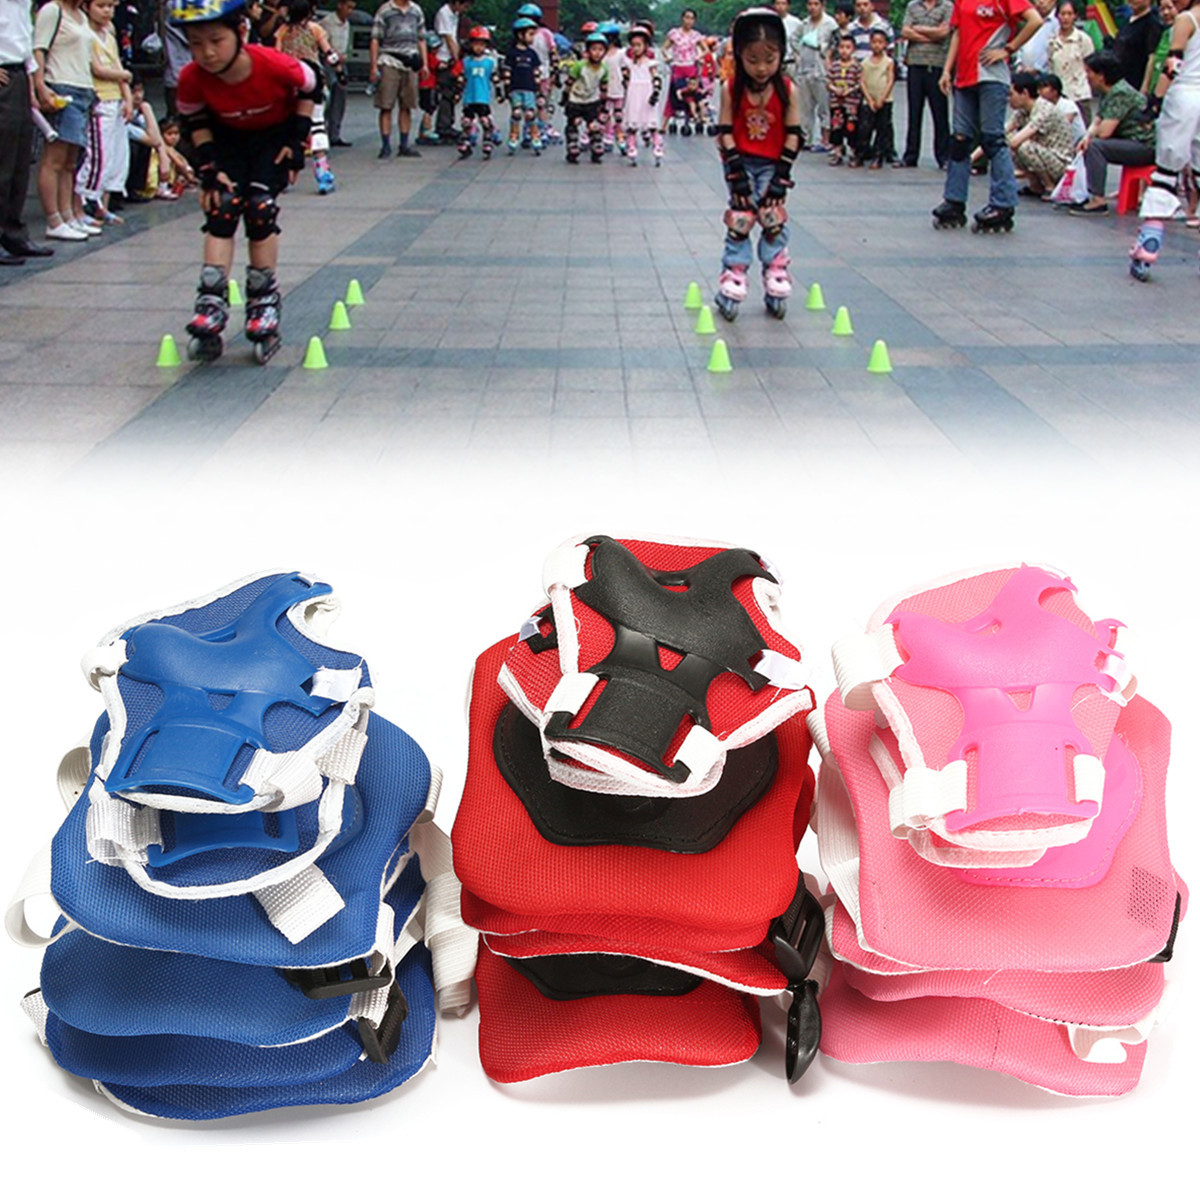 6Pcs Children Kids Elbow Knee Pad Wrist Guard Protector For Skateboard Skating